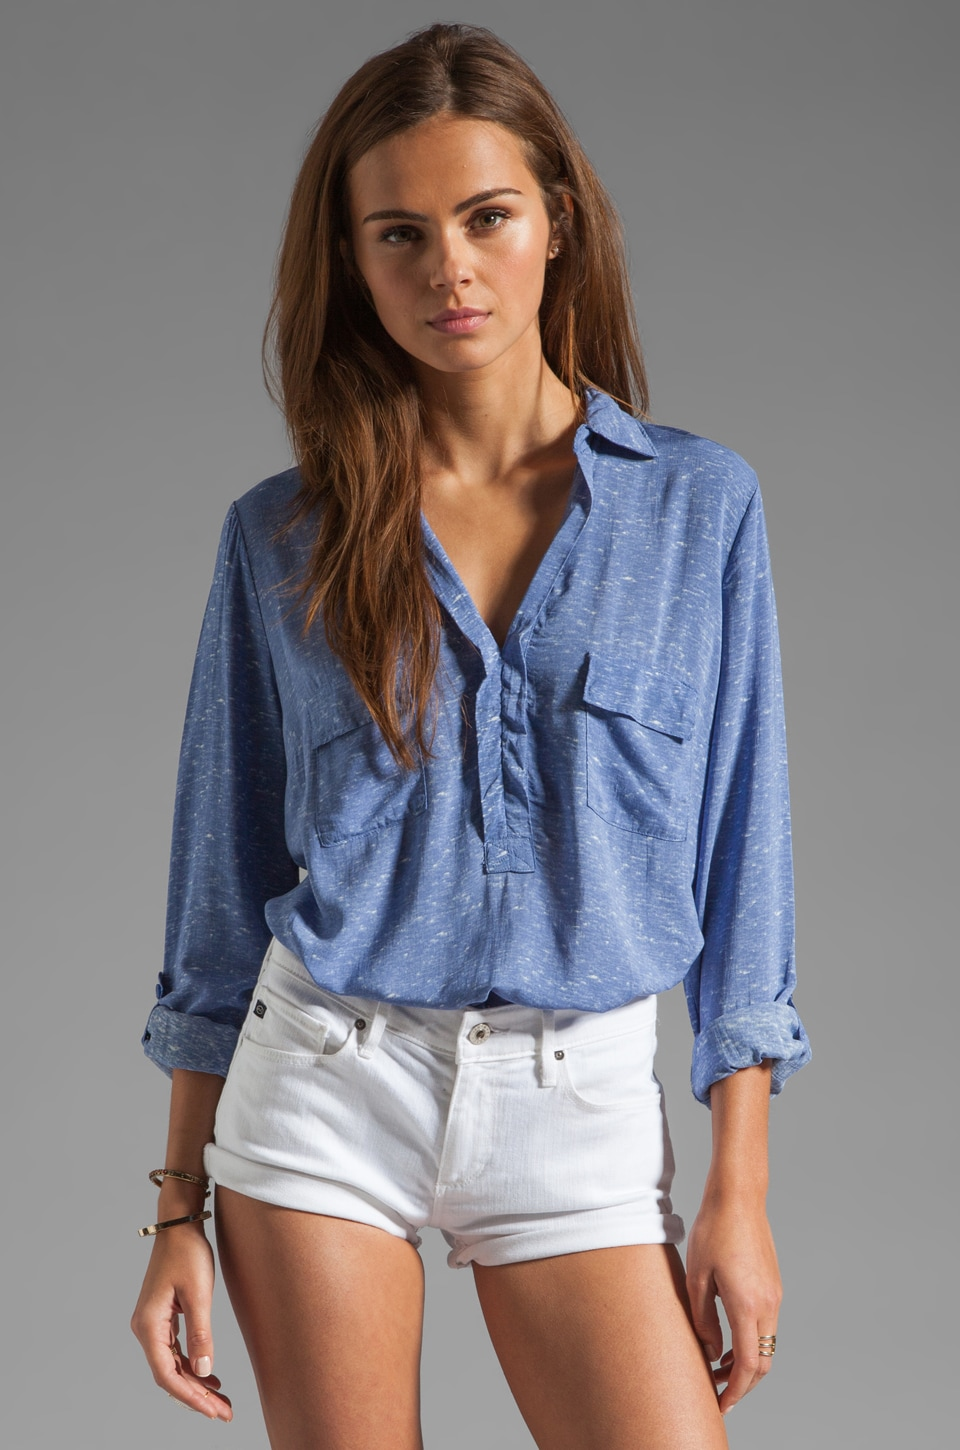 Splendid Heathered Shirting in French Blue